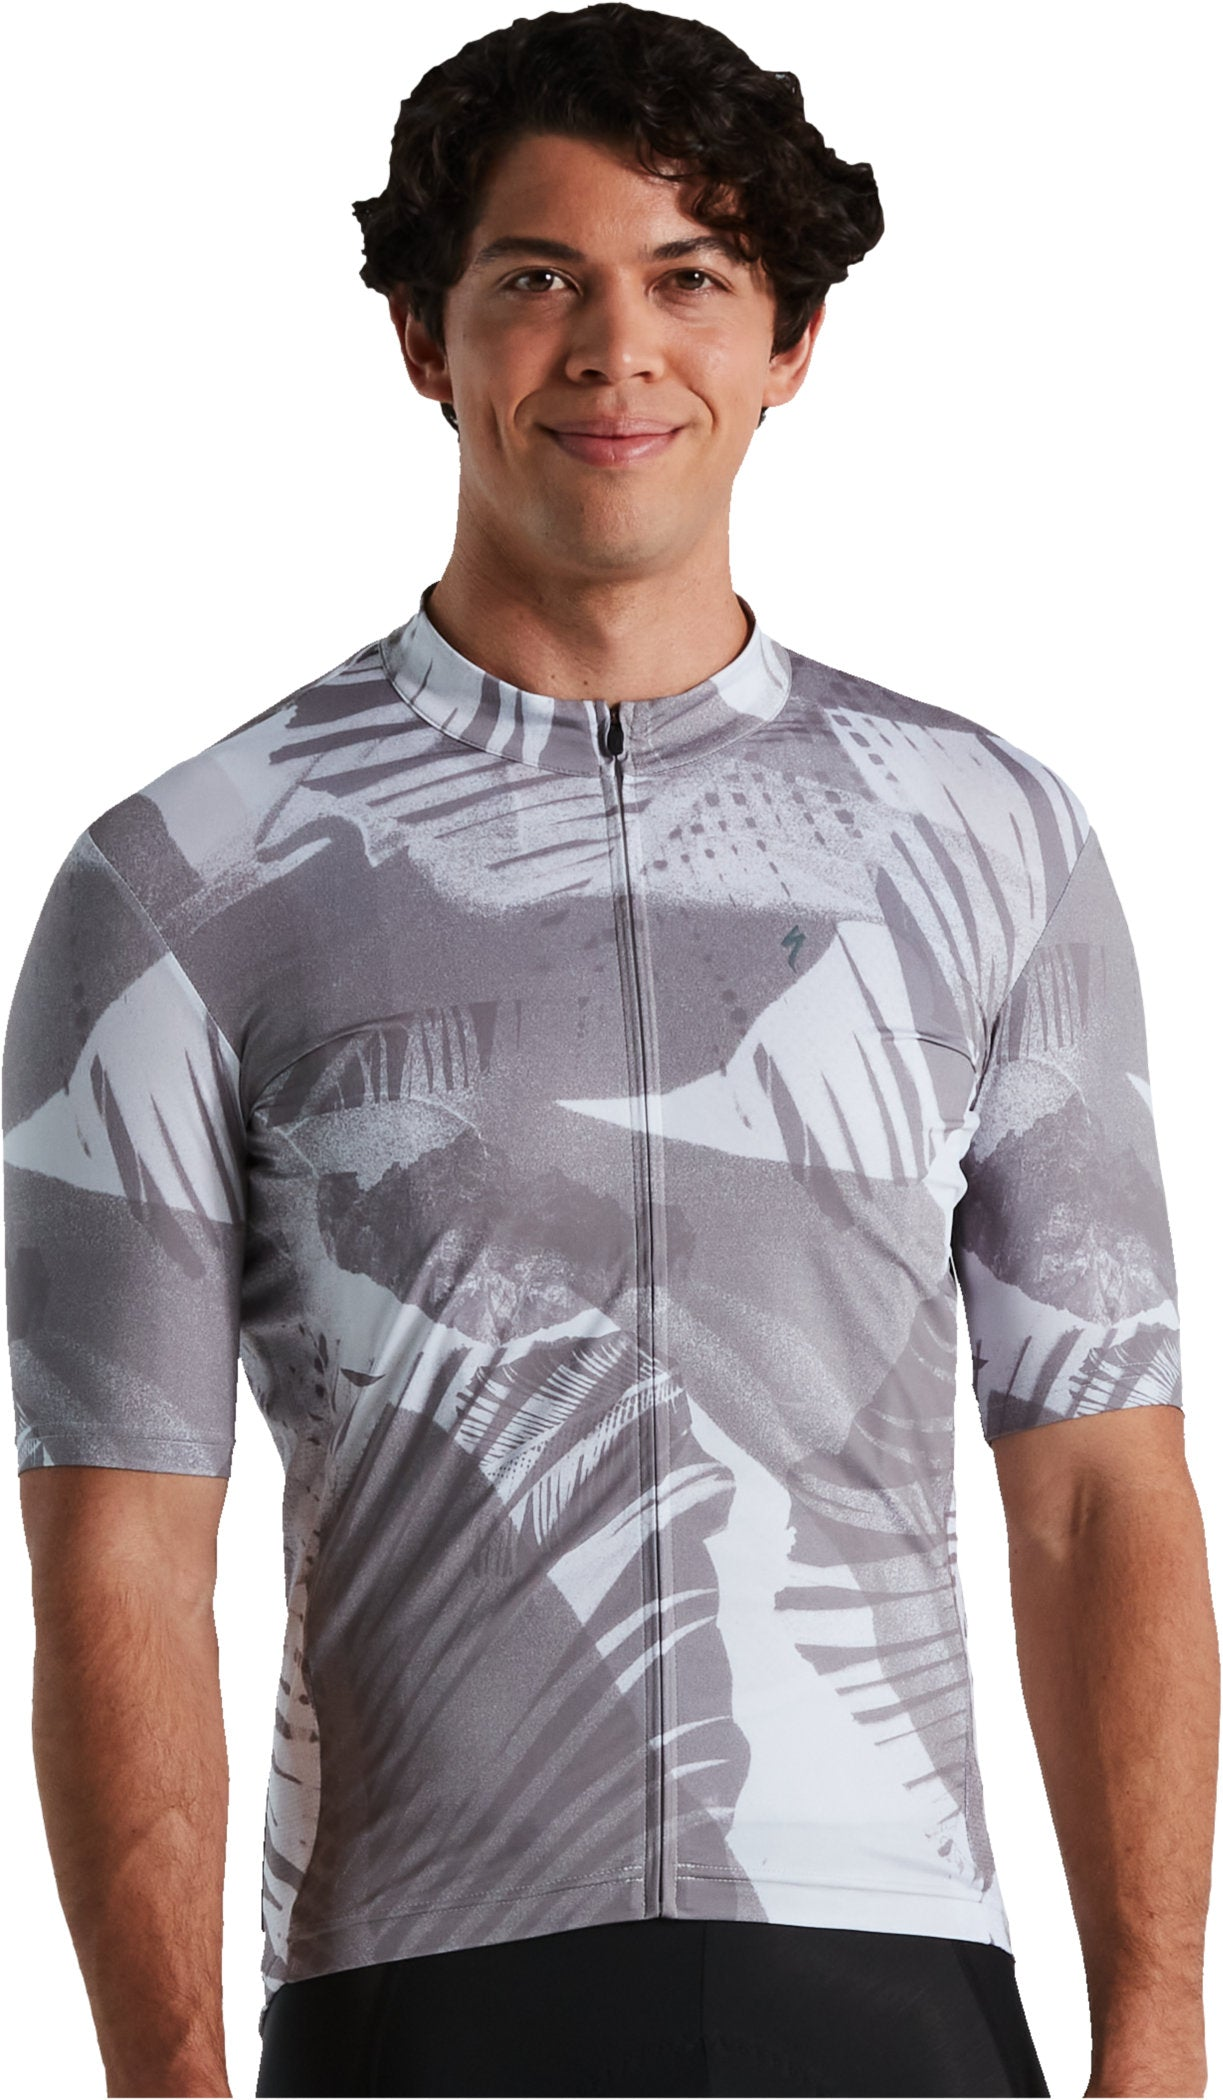 Men's RBX Fern Jersey